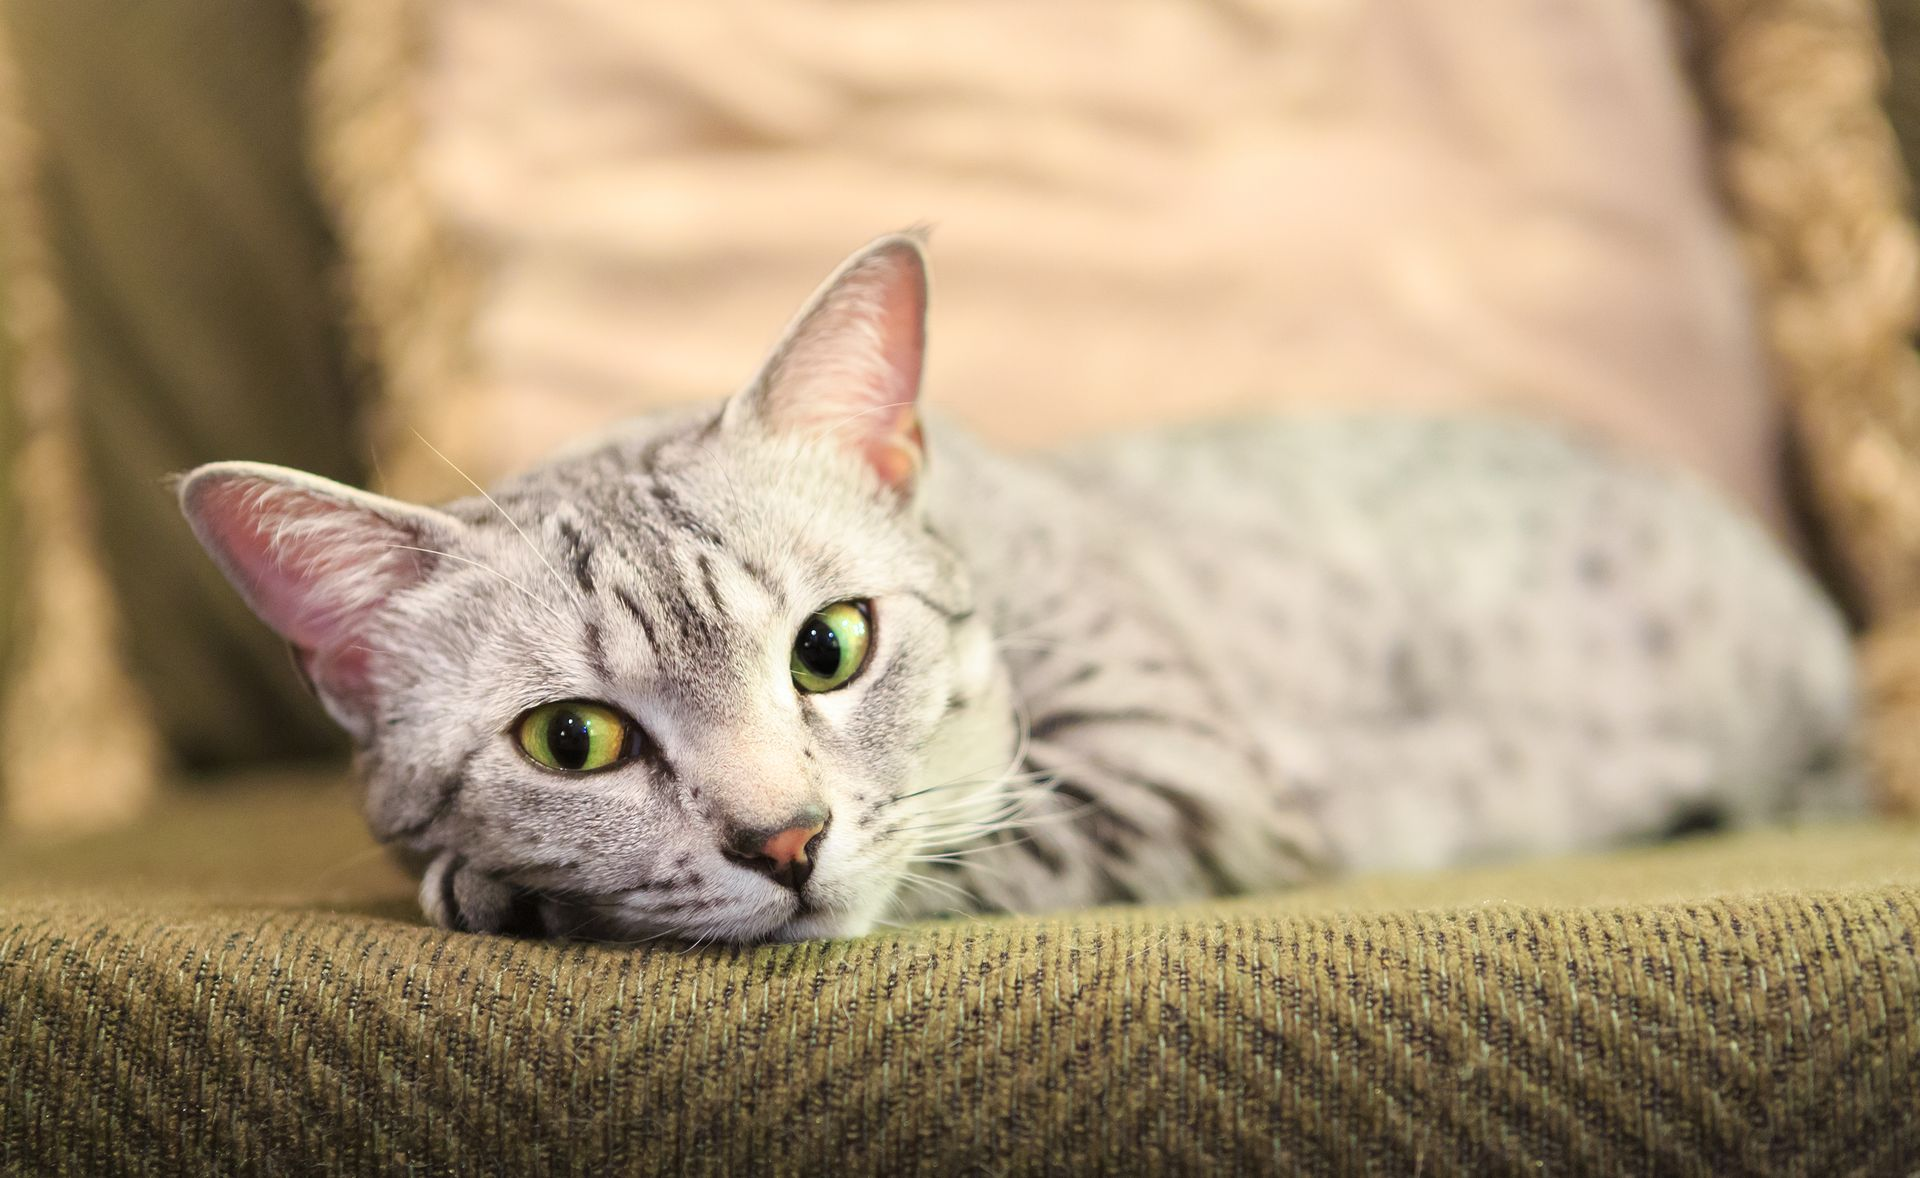 Home Care for the Cat with Vomiting and Diarrhea